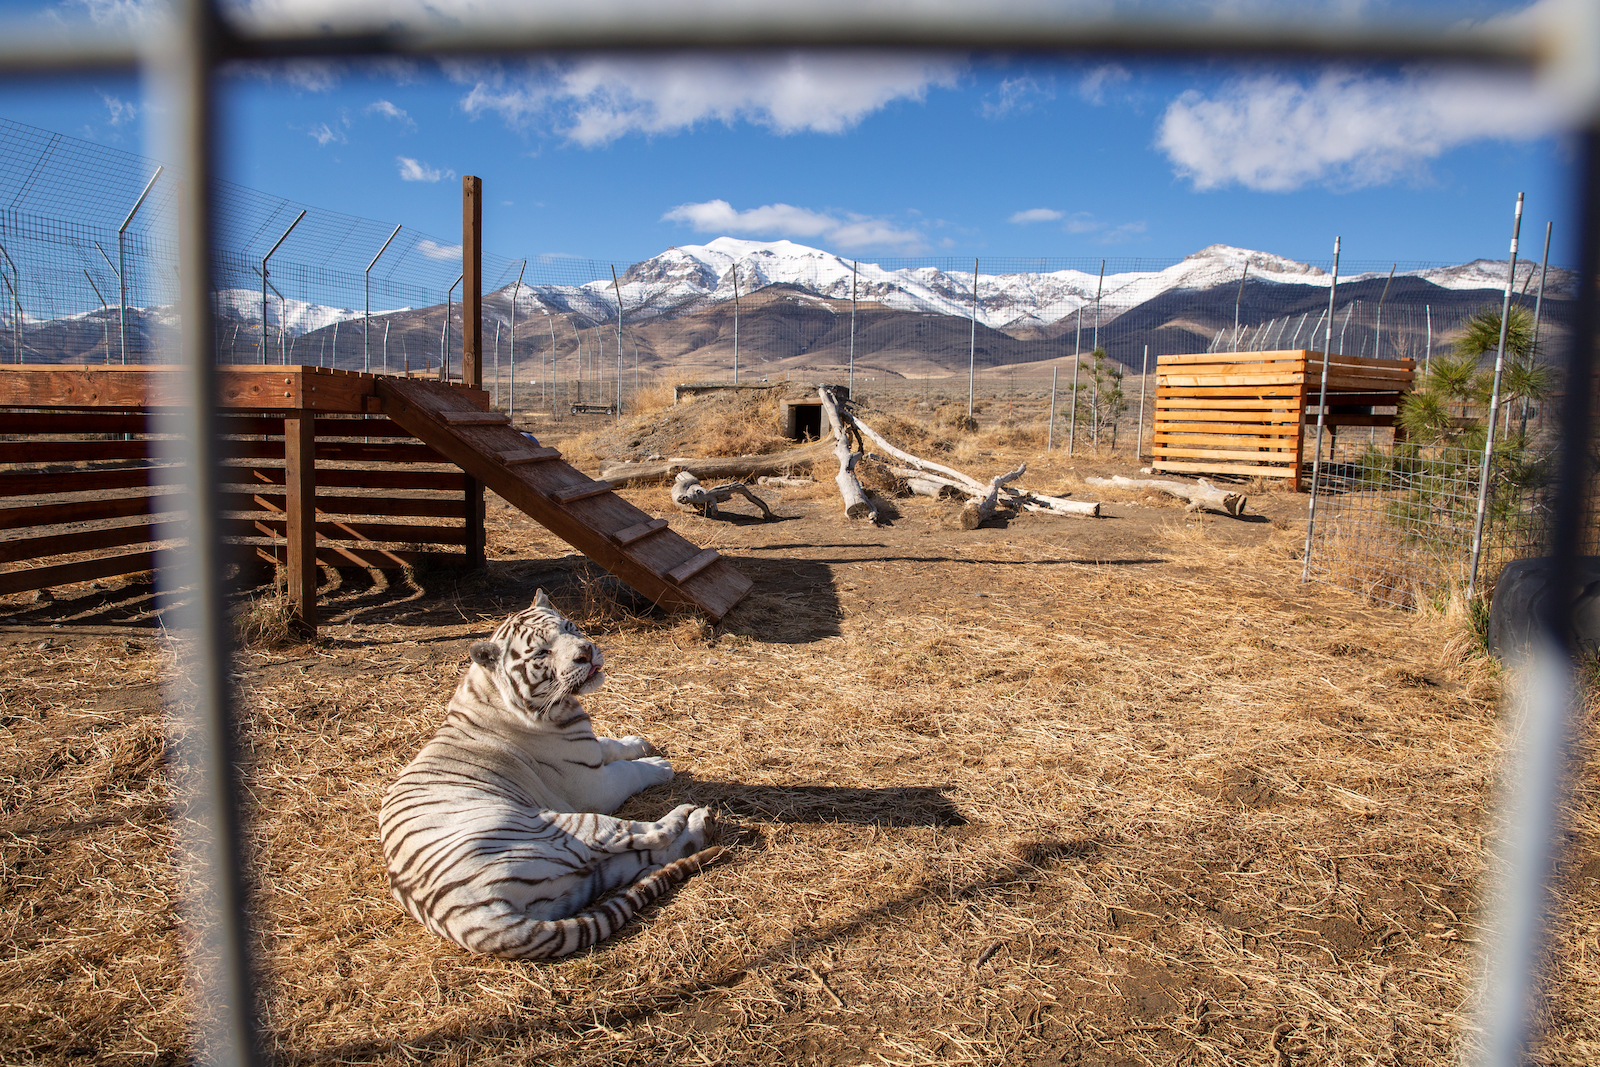 White tiger in wildlife sanctuary of Winnemucca, Cowboy Country, Nevada with mountains in background.